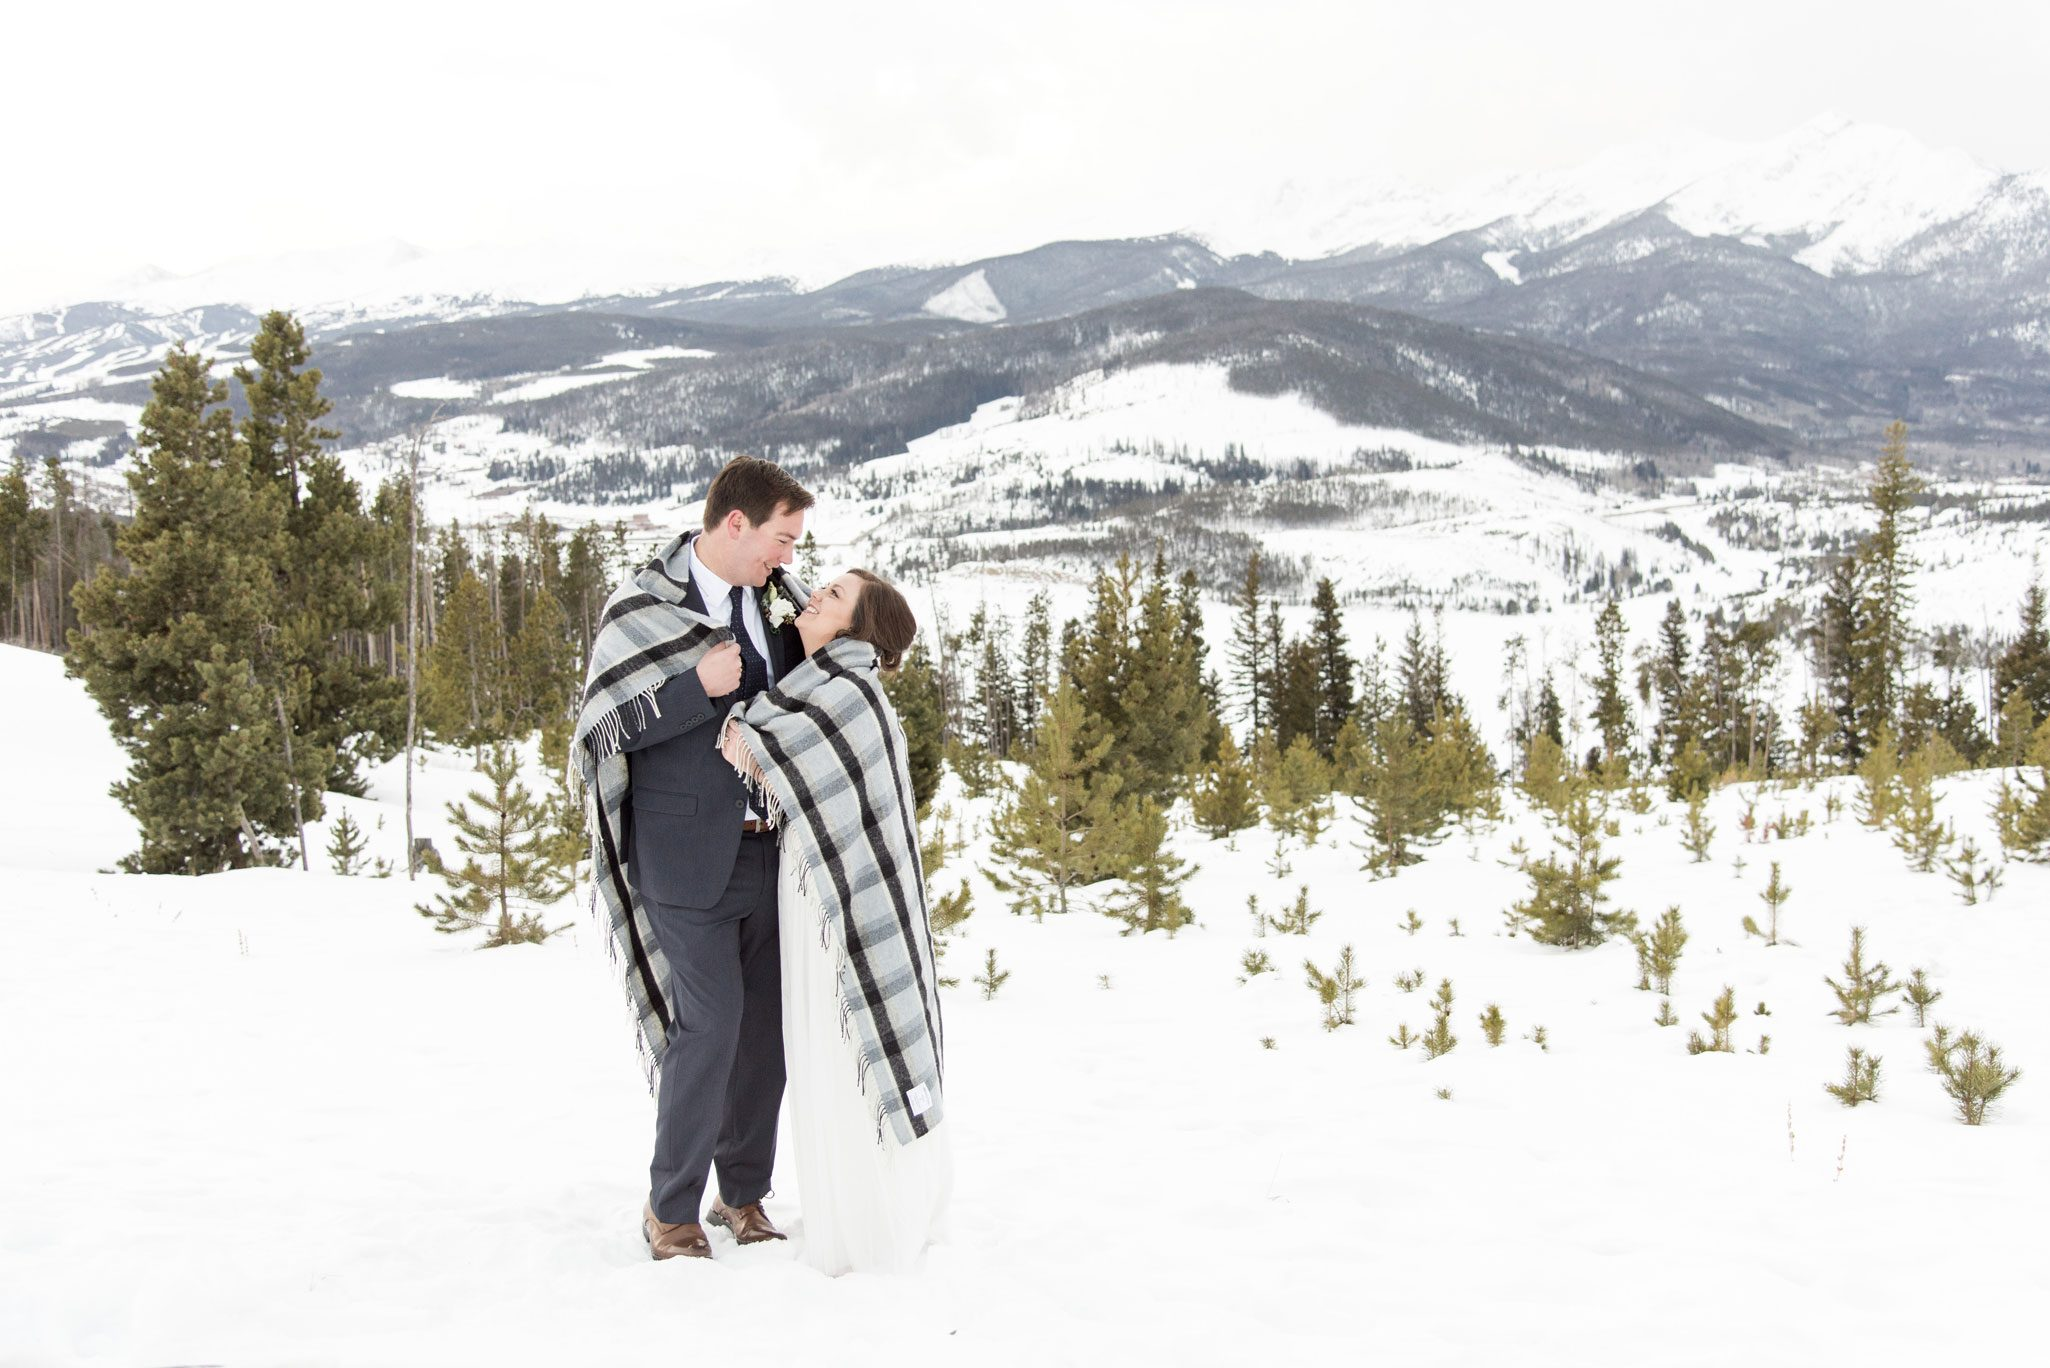 A Winter Breckenridge, Colorado Elopement in the Snow